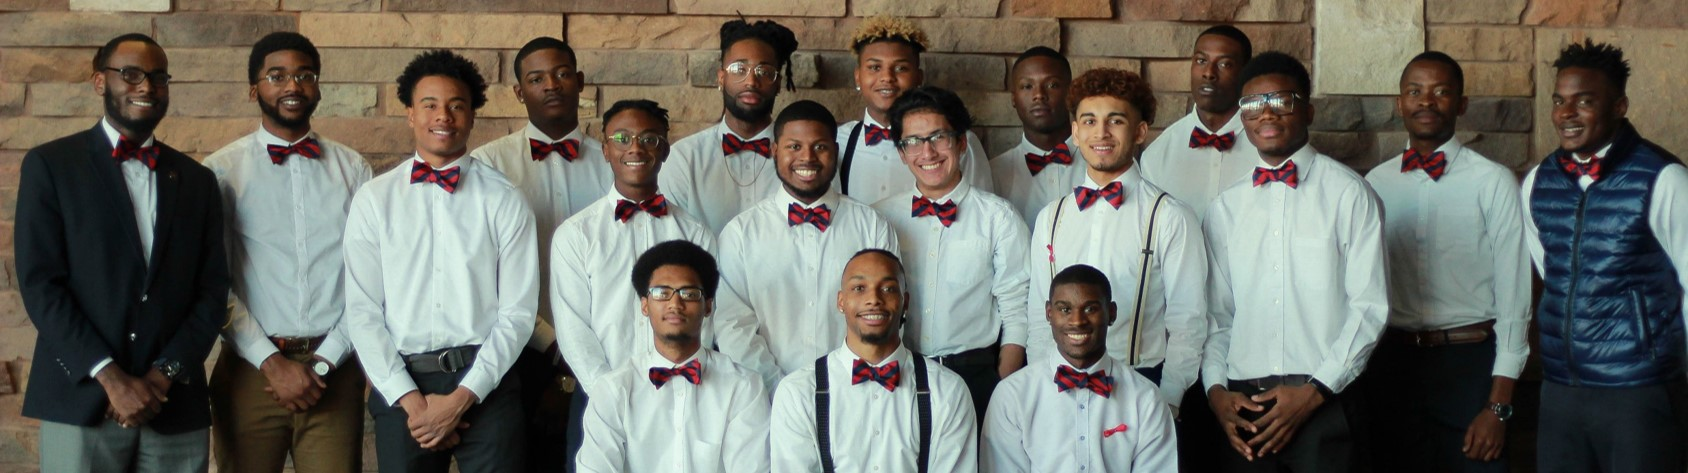 The Collegiate Men of Distinction